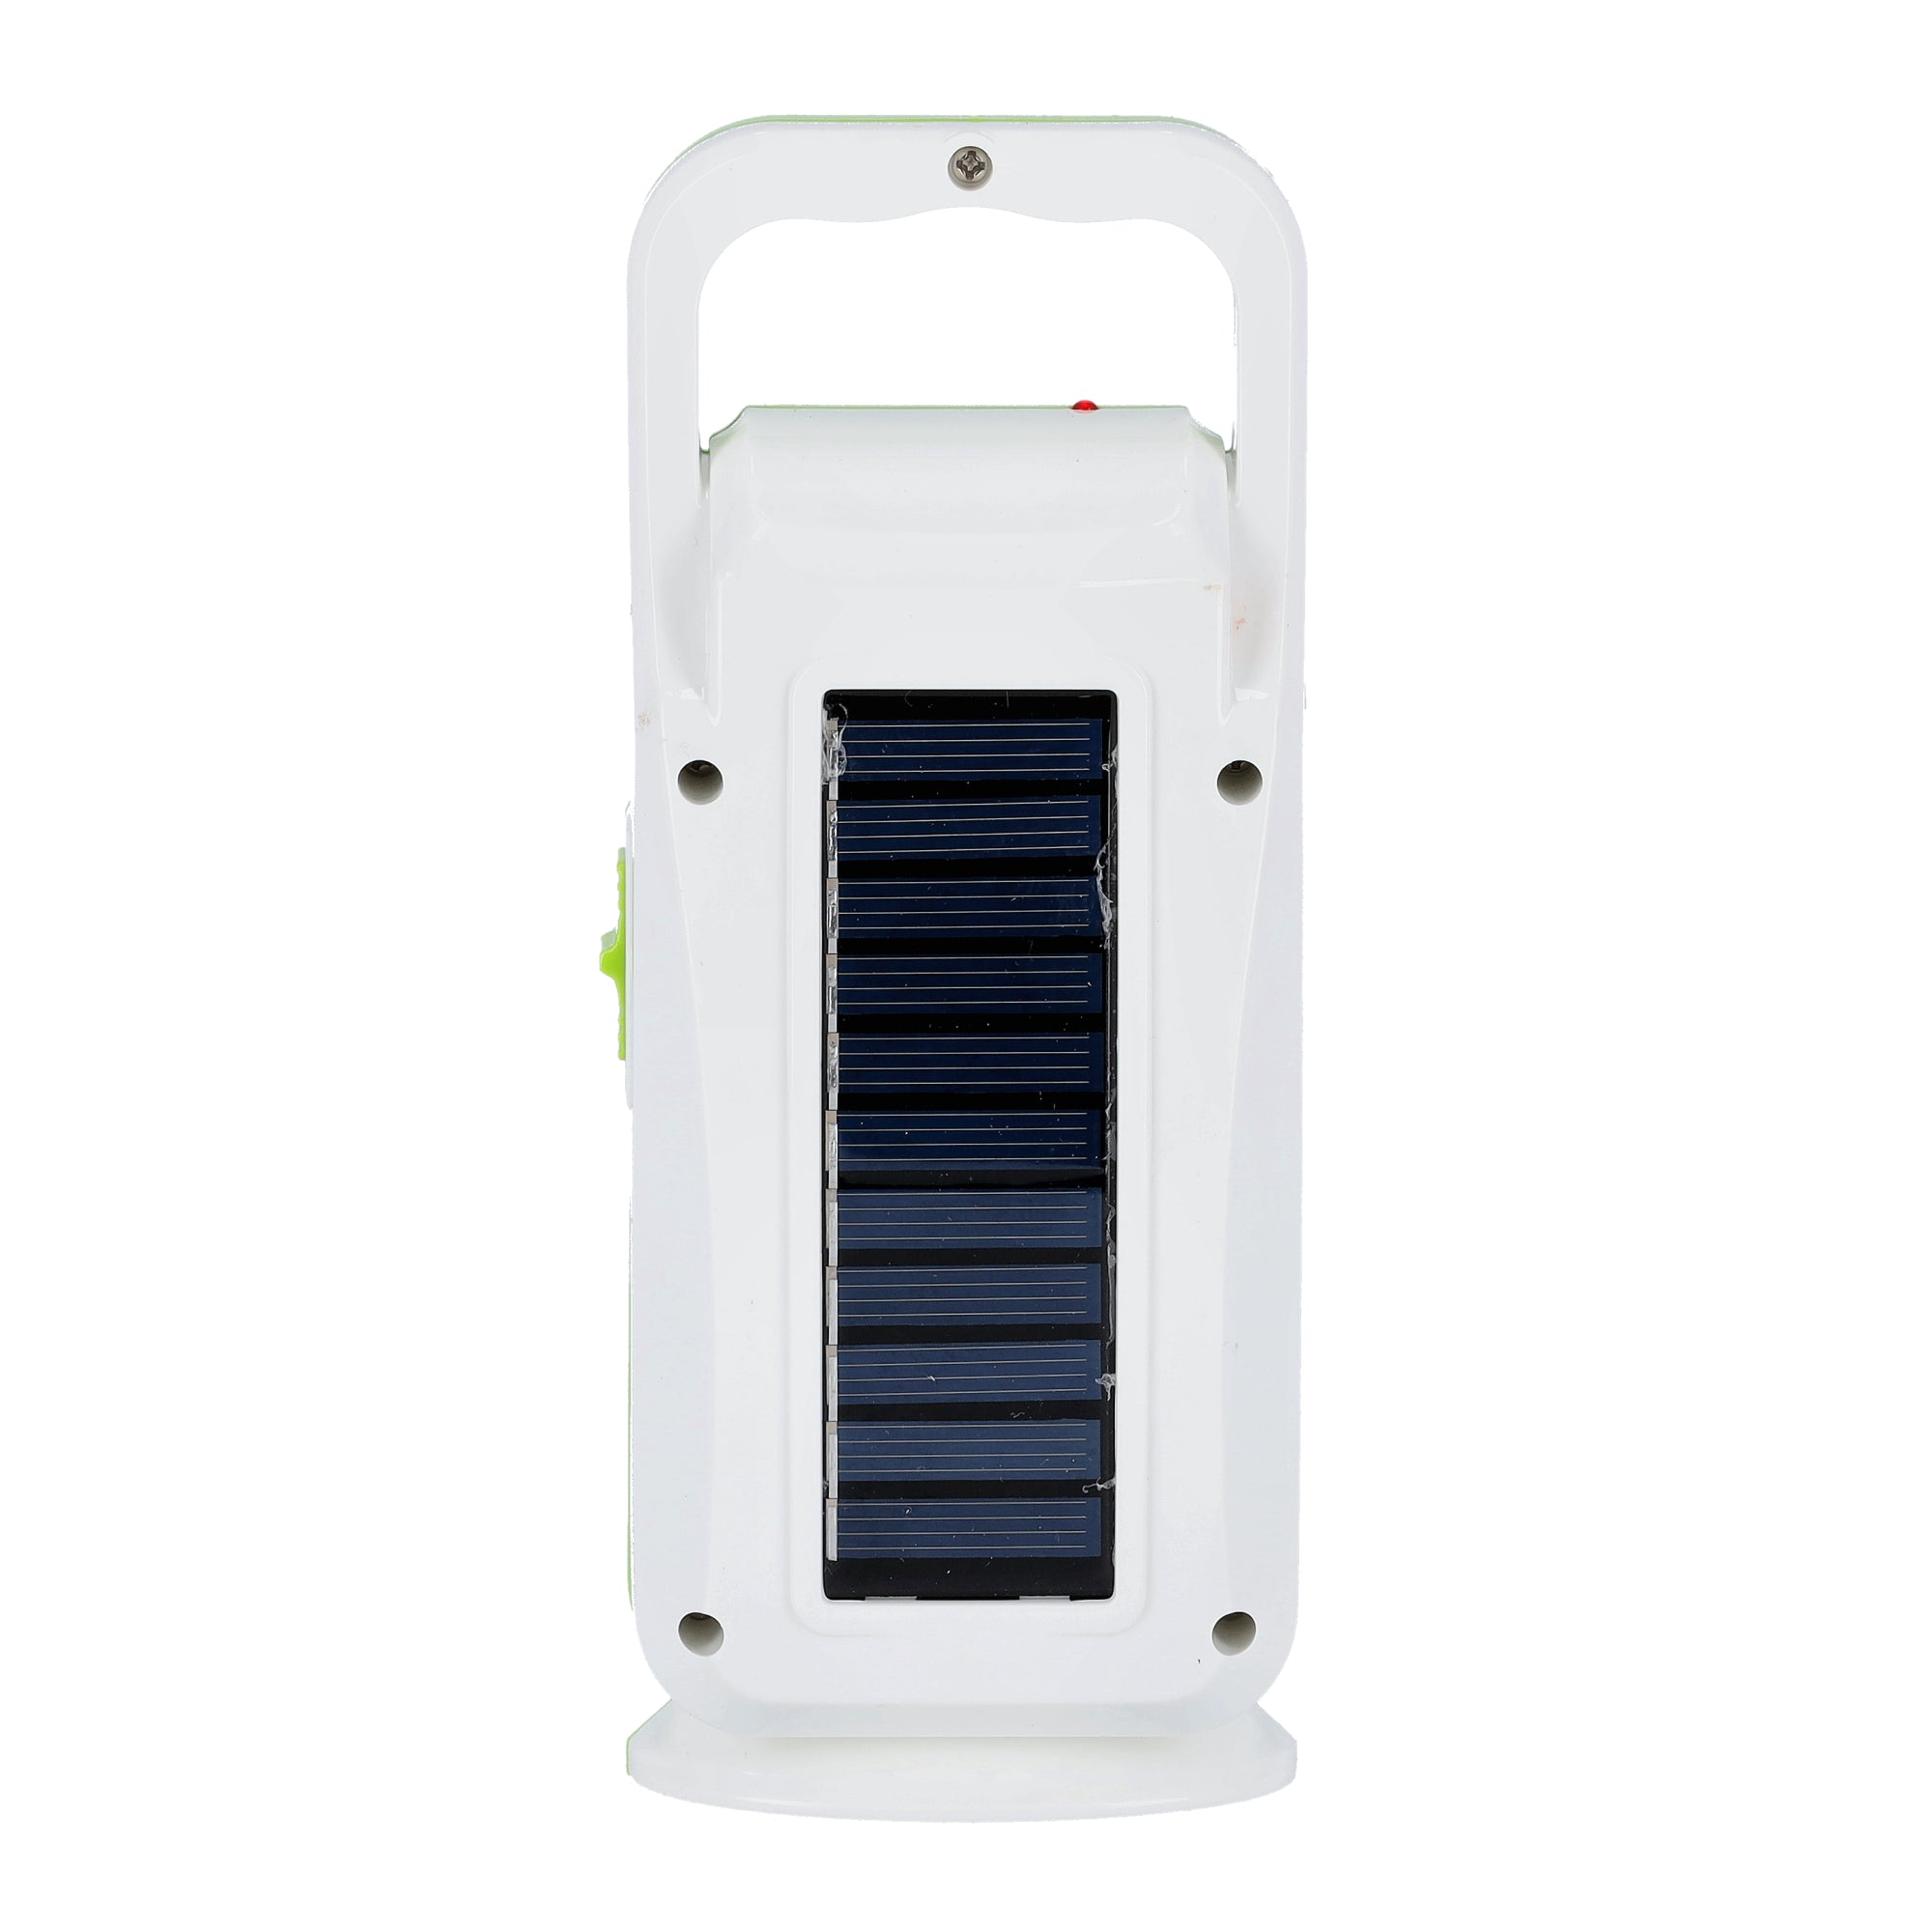 4V 1200mAh Rechargeable Solar Led Emergency Light | Camping Emergency Light with Light Dimmer Function | 22 PCS Hi-Powered LEDs, 40 Hours Working (Weak Light) | Very Suitable for Power Outages, & Camping